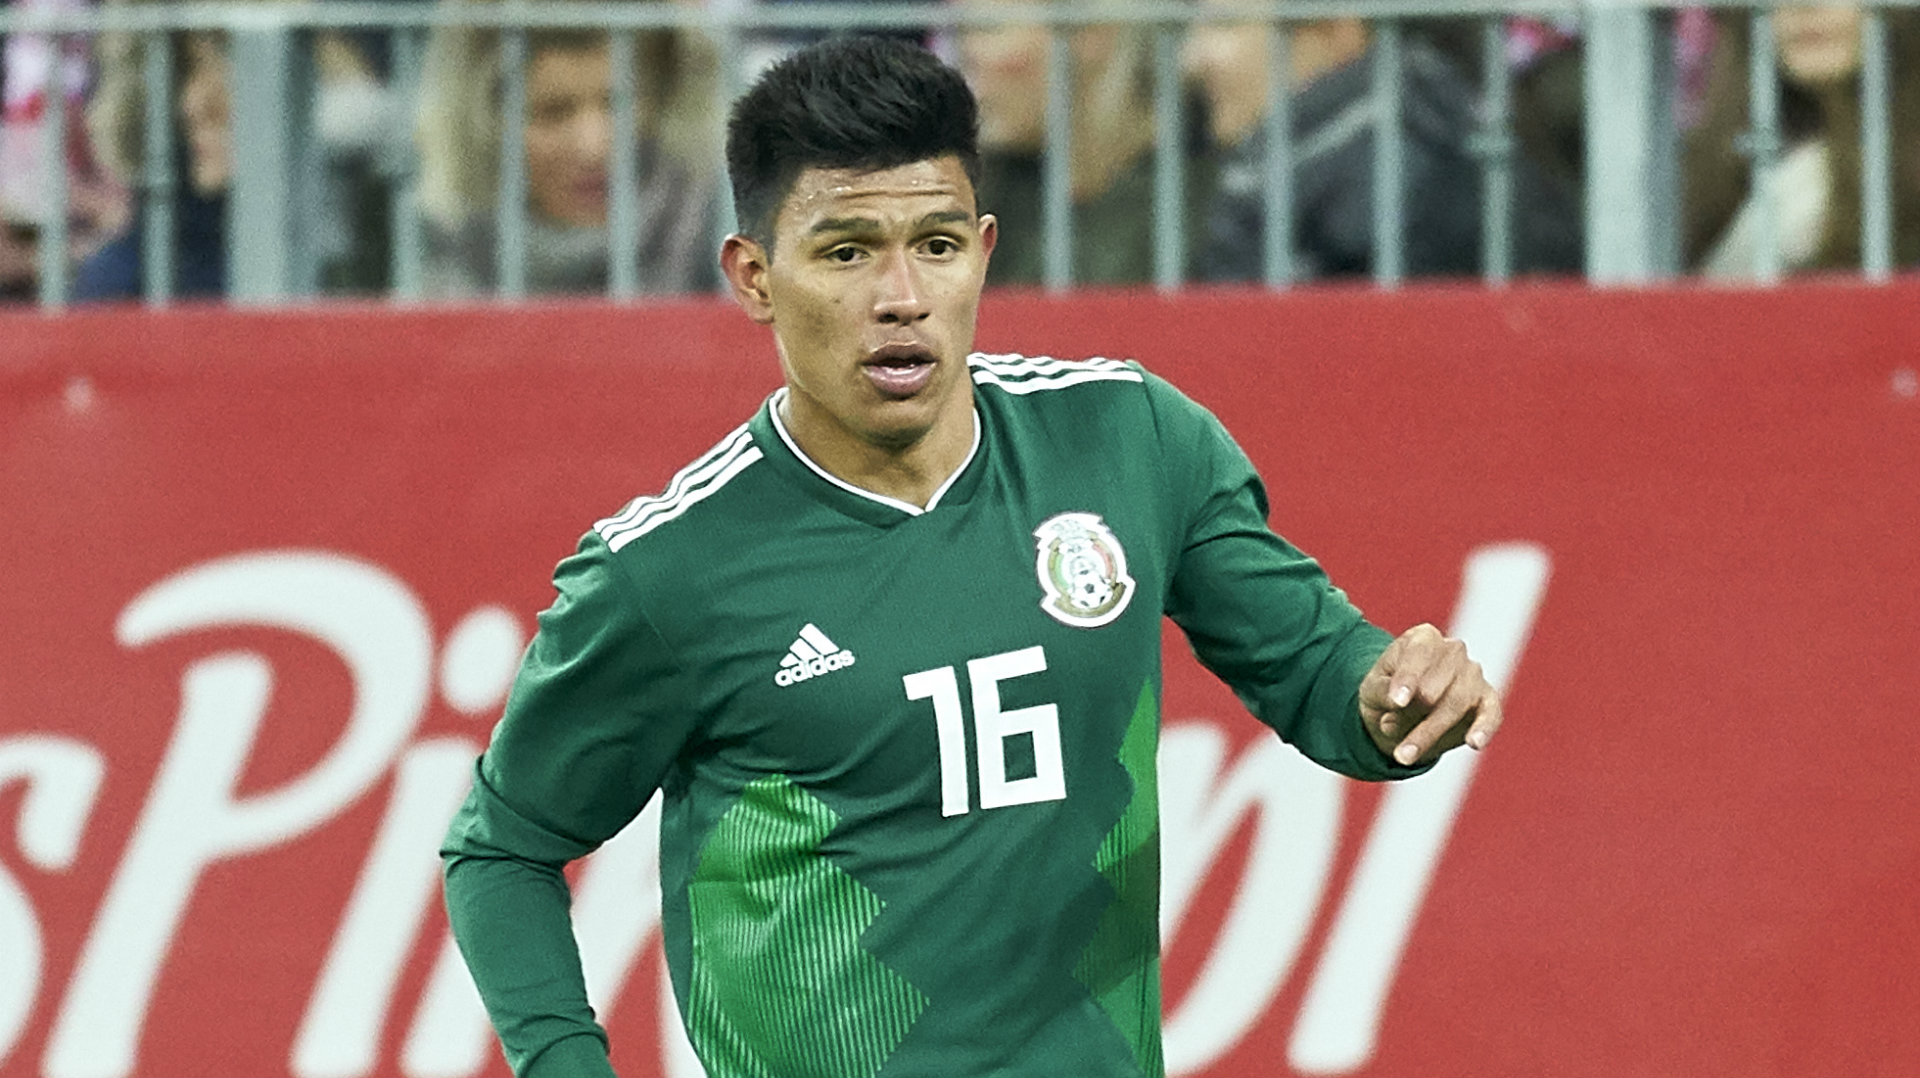 957e3b1041a Liga MX transfer news: The latest rumors and chisme in Mexican soccer